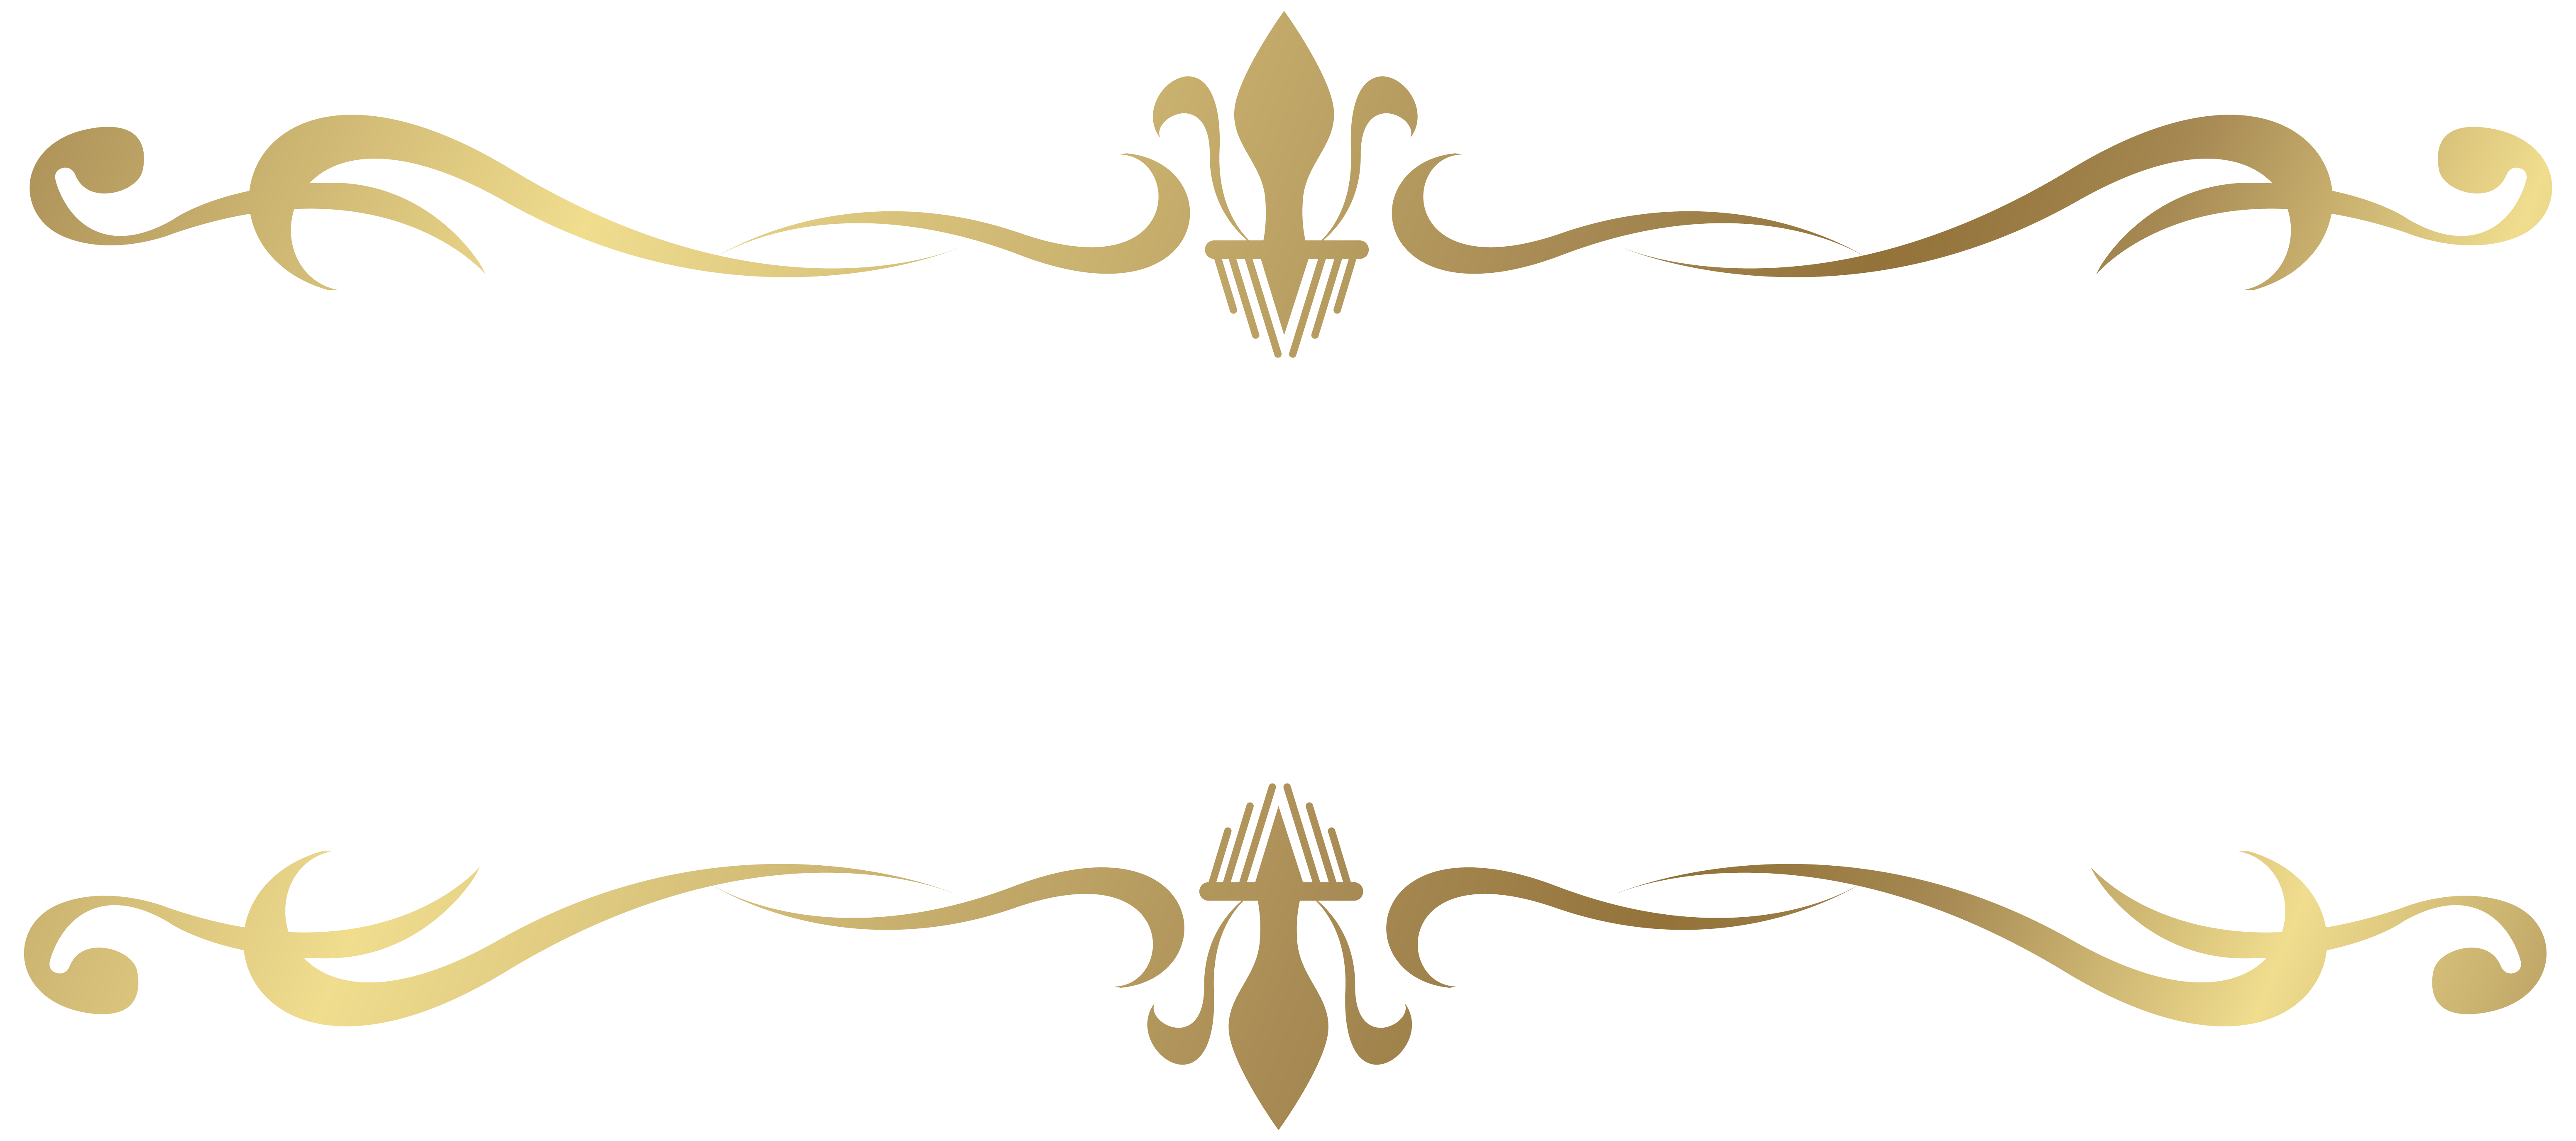 Transparent Deco Border Elenets Png Image Gallery Yopriceville High Quality Images An Wedding Logo Design Indian Wedding Album Design Wedding Album Design